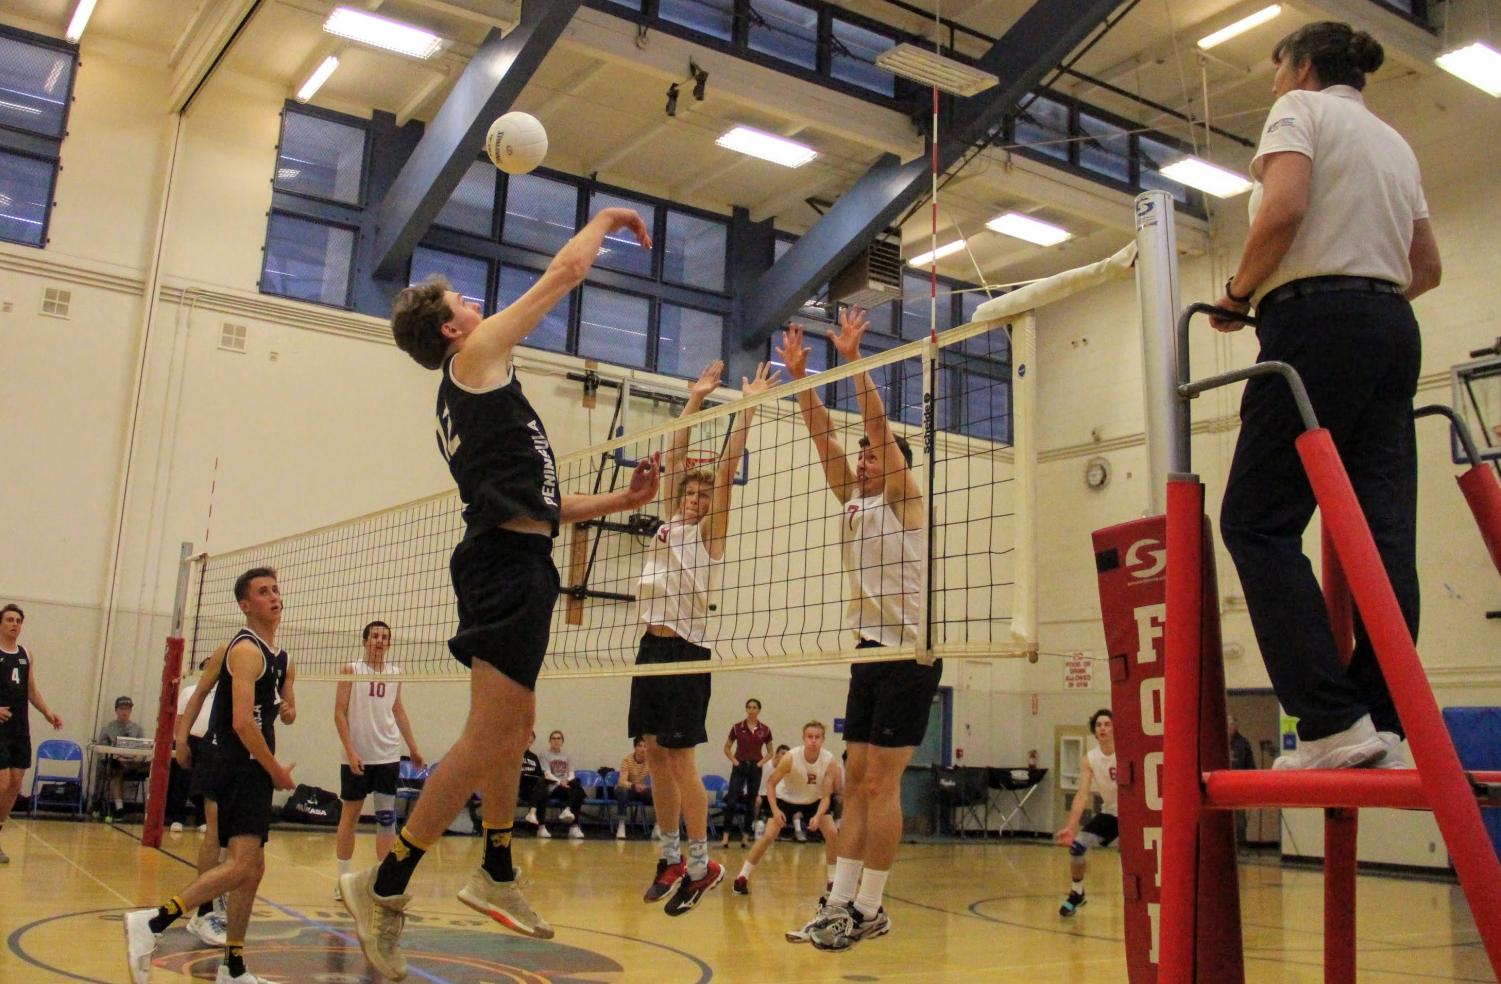 Stefan Fahr '19 and Logan Grenier '19 reach up to block the incoming ball.